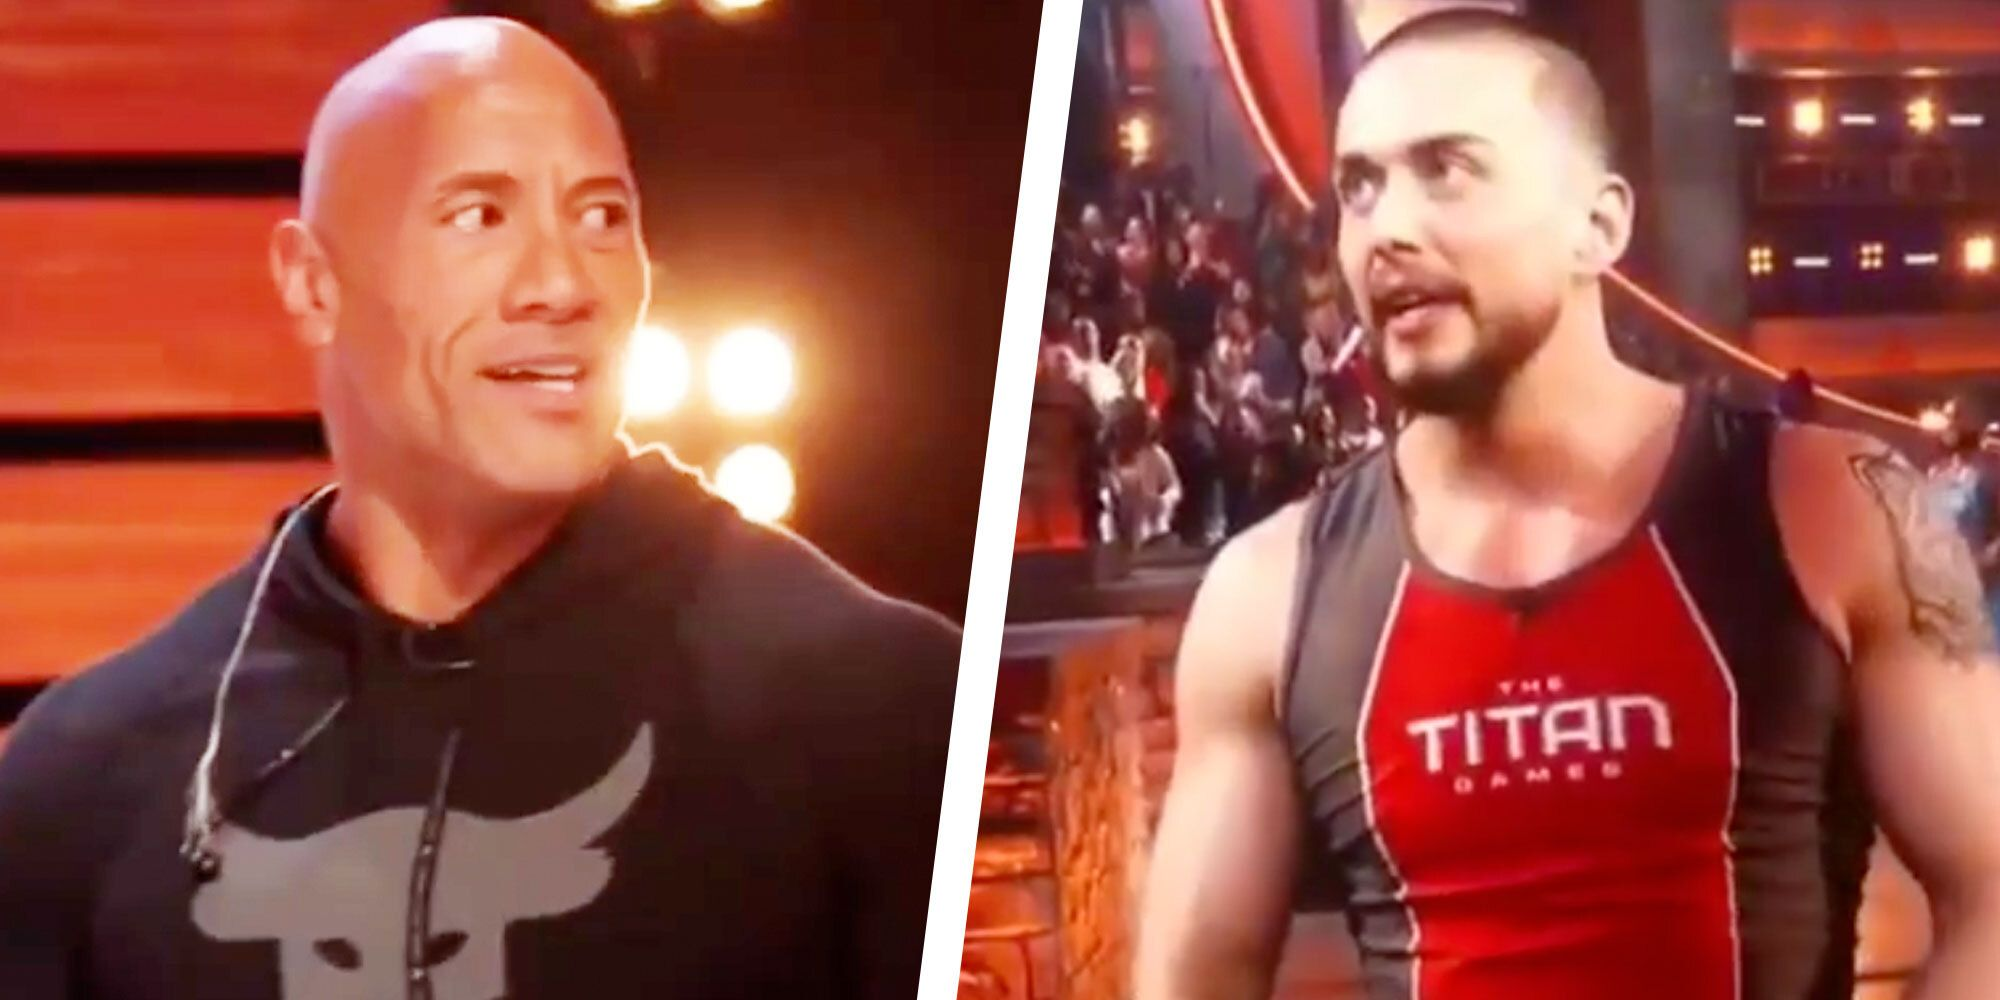 The Rock Praises Trans 'Titan Games' Athlete Mitch Harrison: 'You Are Breaking Barriers'